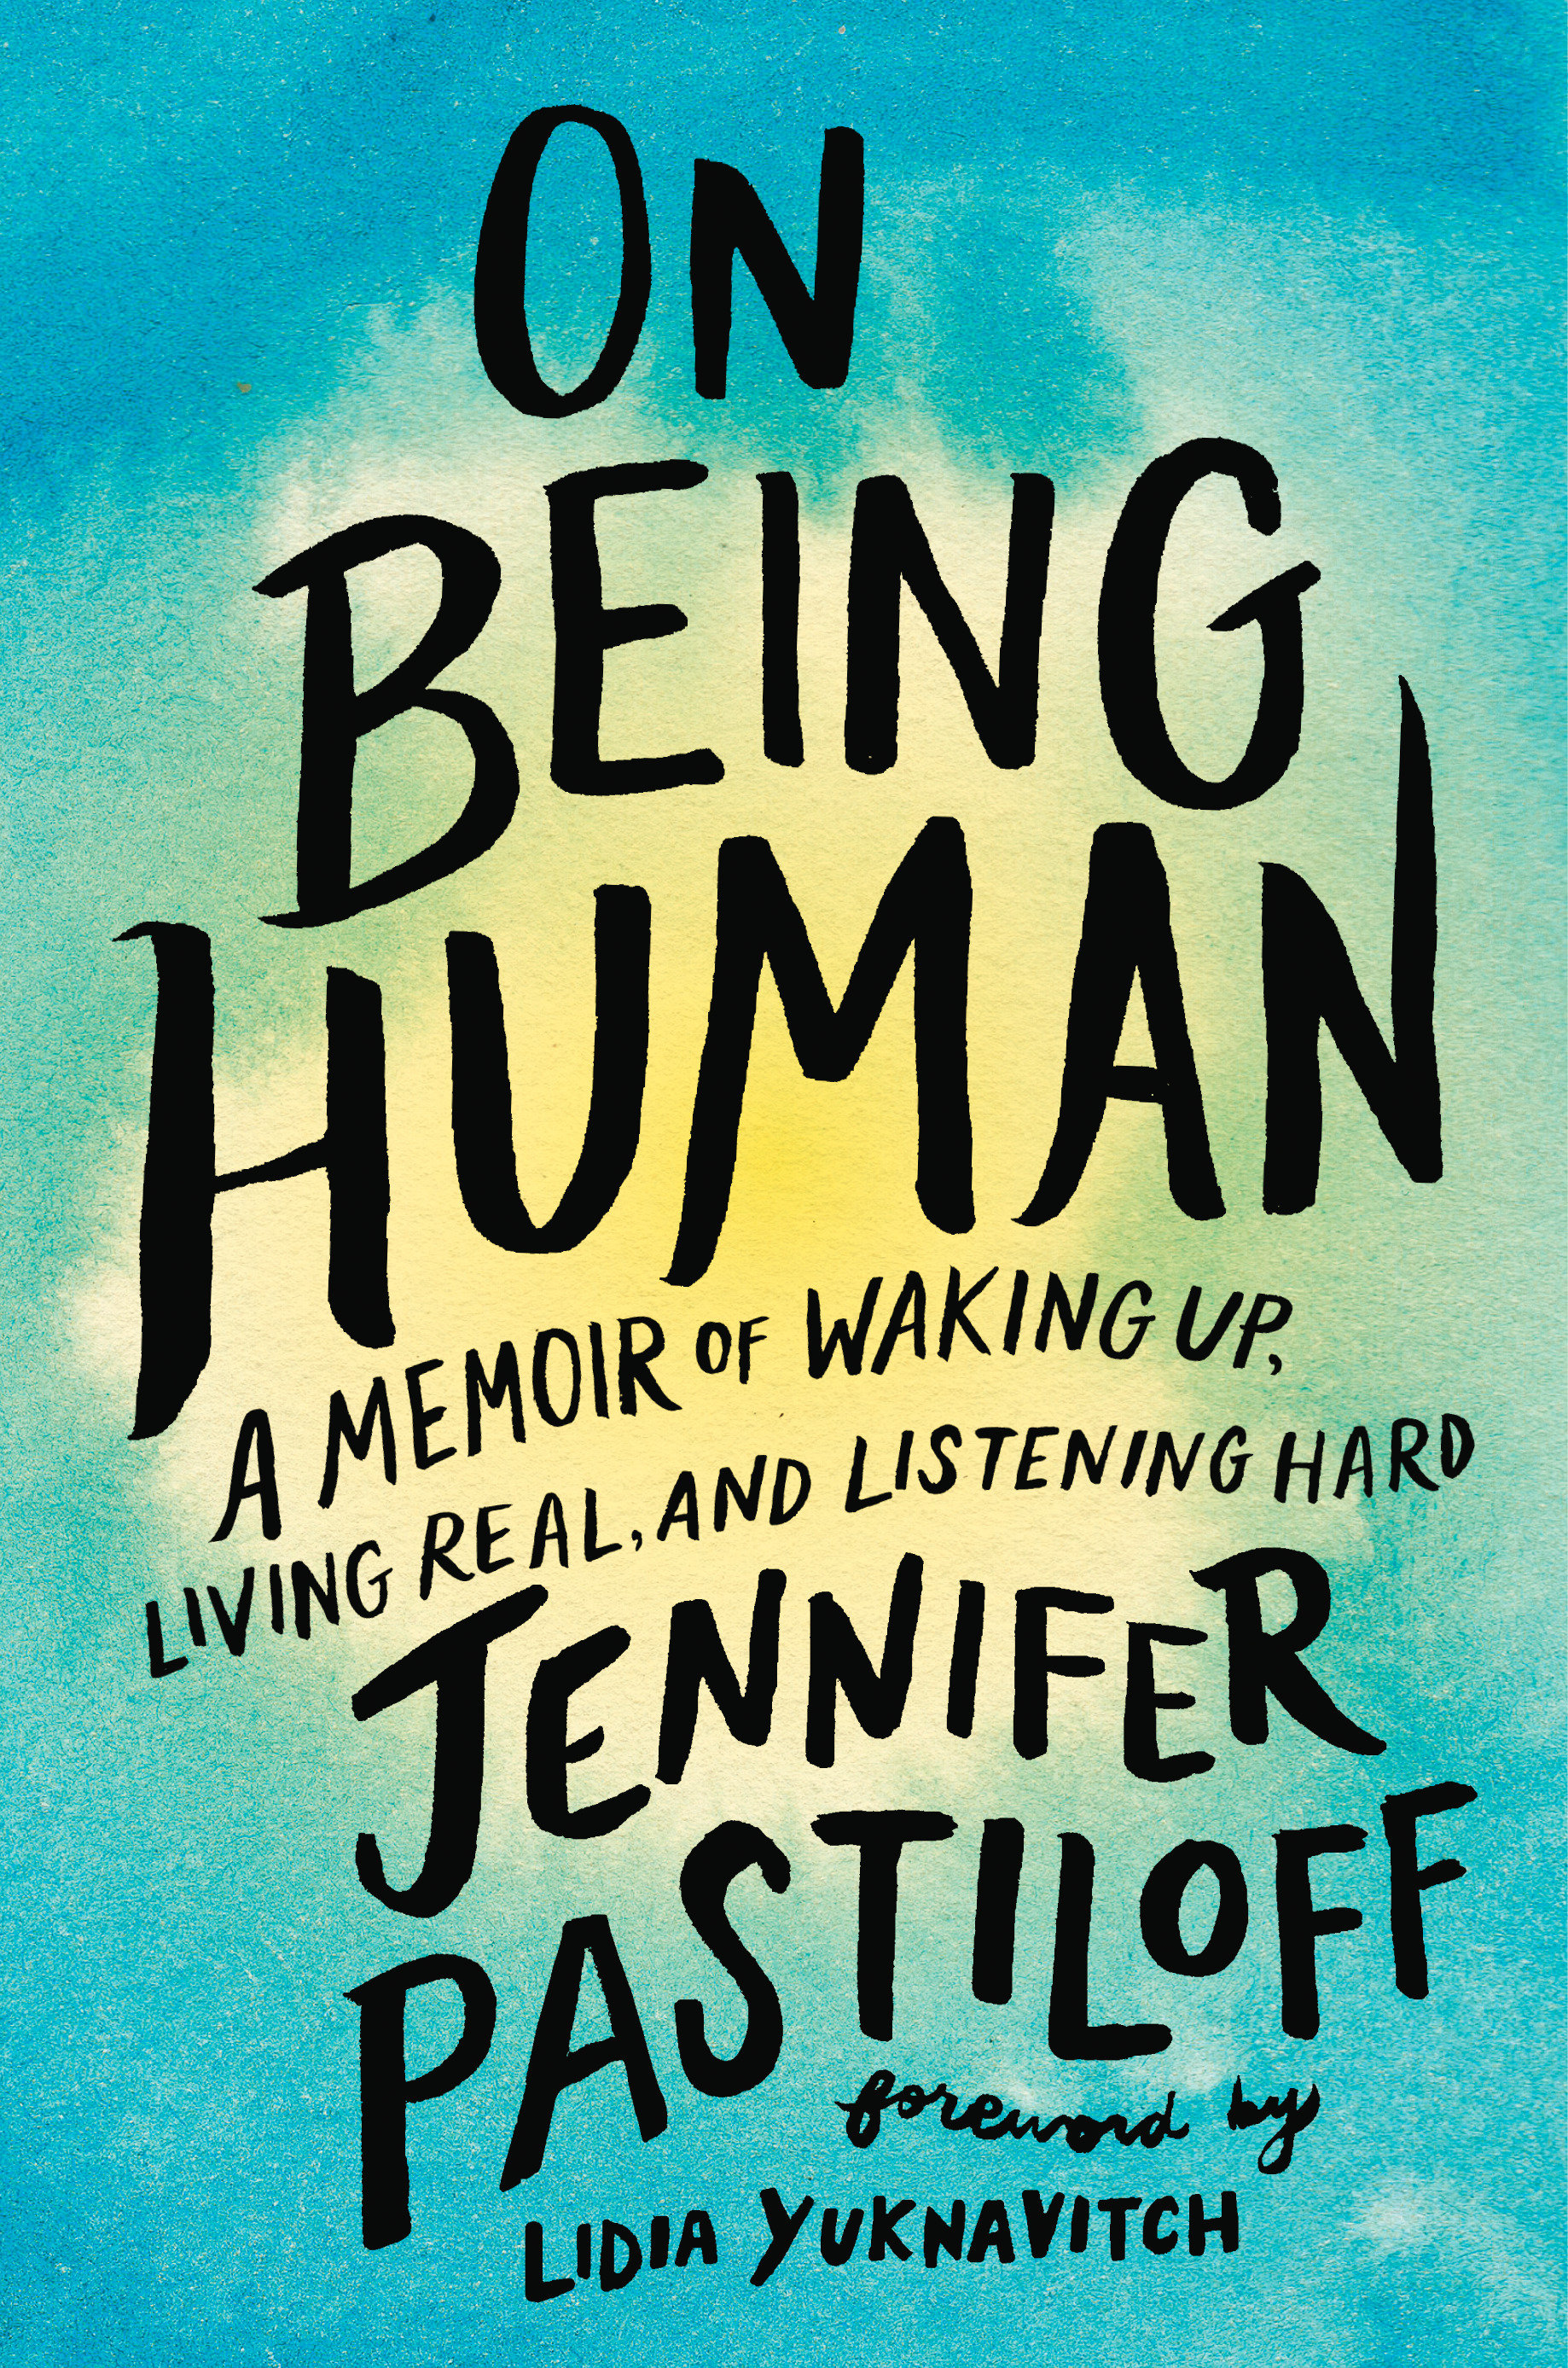 On Being Human A Memoir of Waking Up, Living Real, and Listening Hard